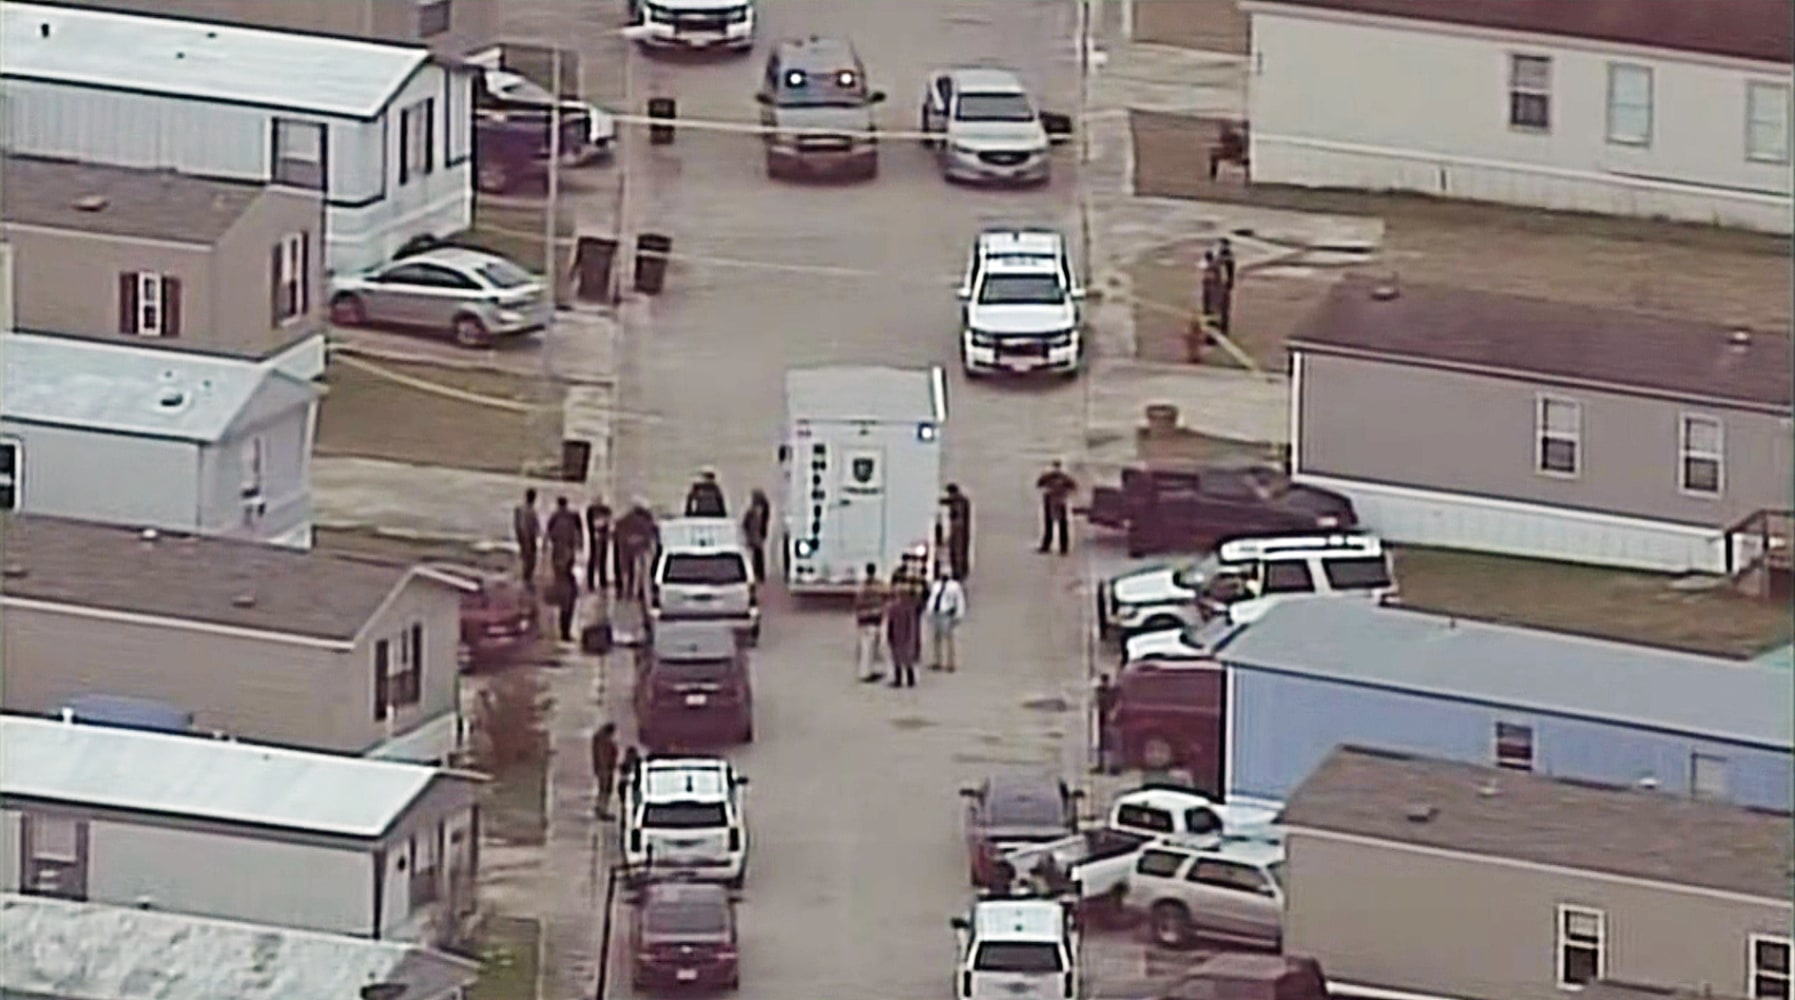 Texas deputies fire at suspect, kill boy, 6, in 'tragic accident'